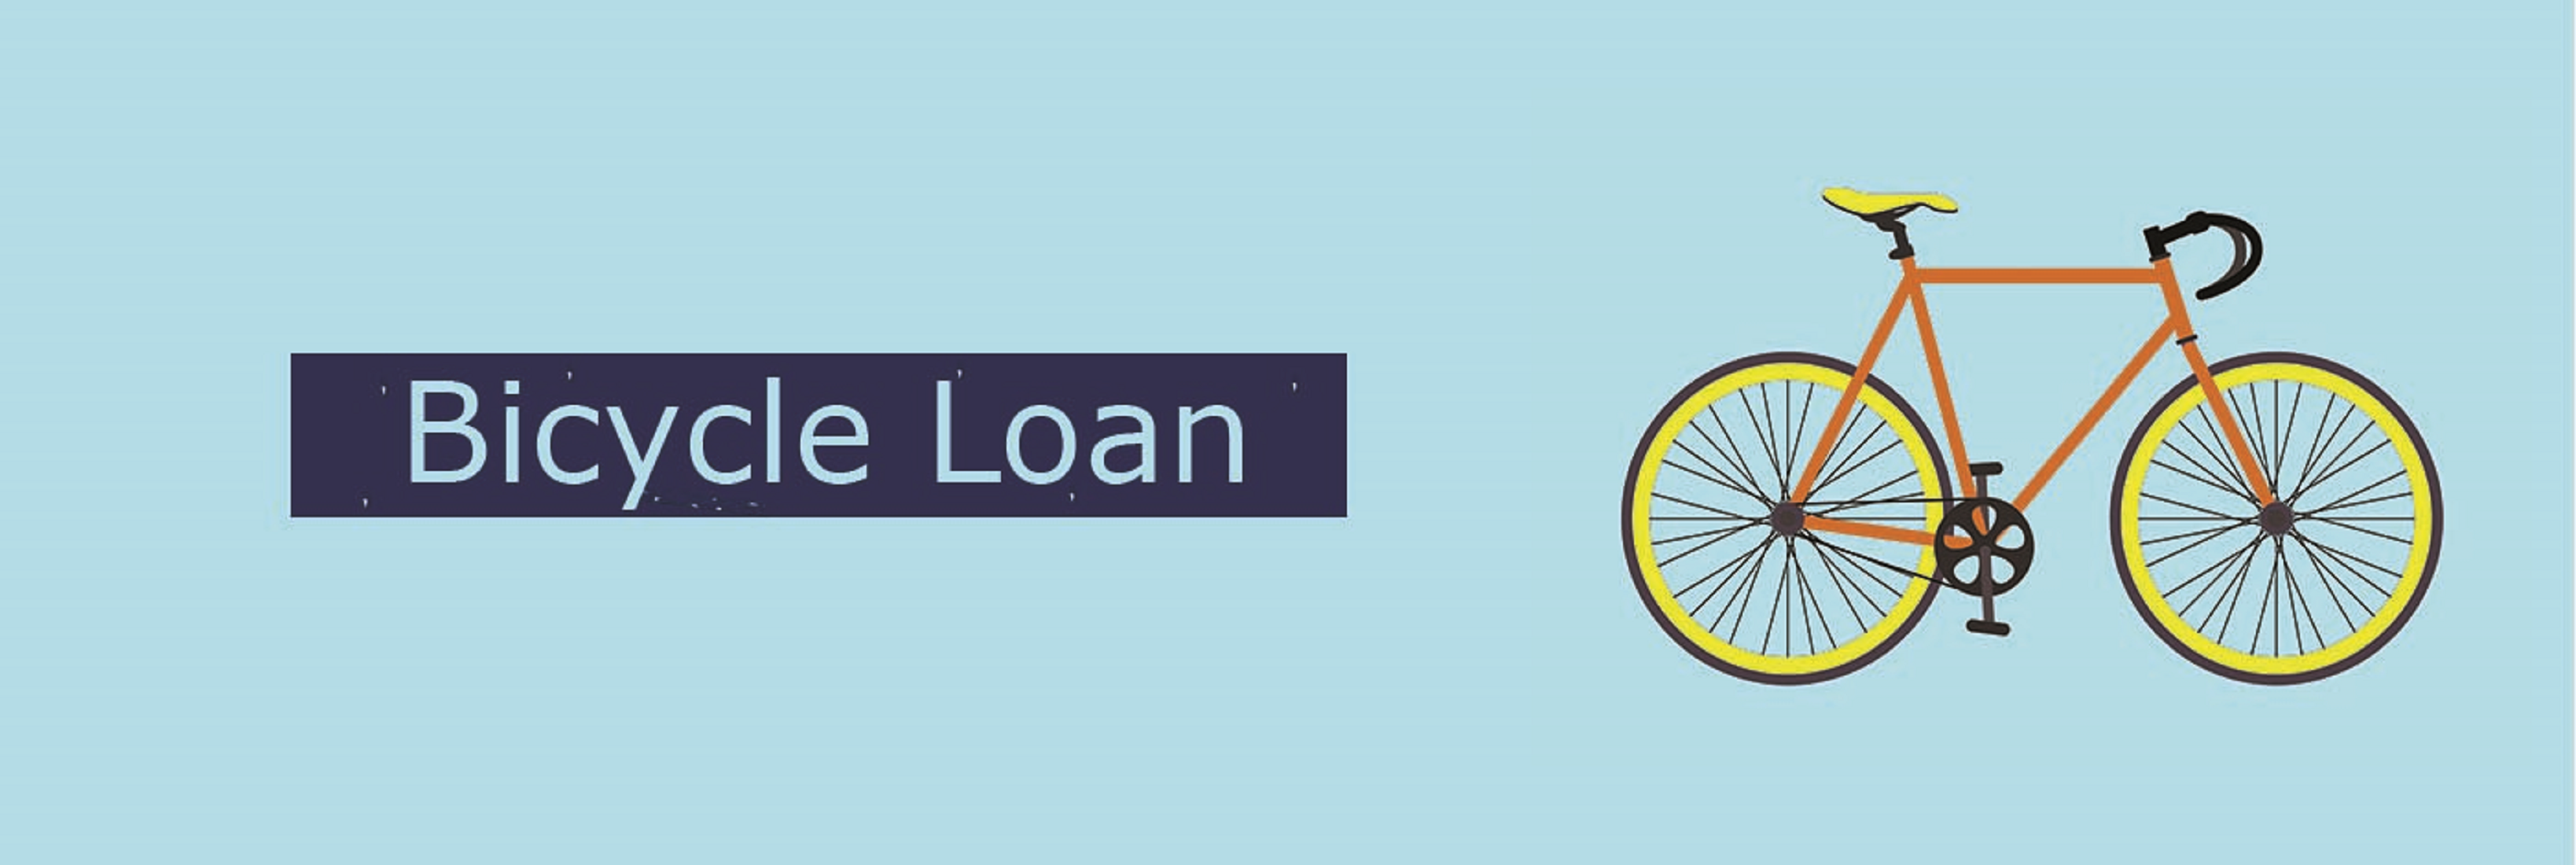 full size Bicycle-loan-banner